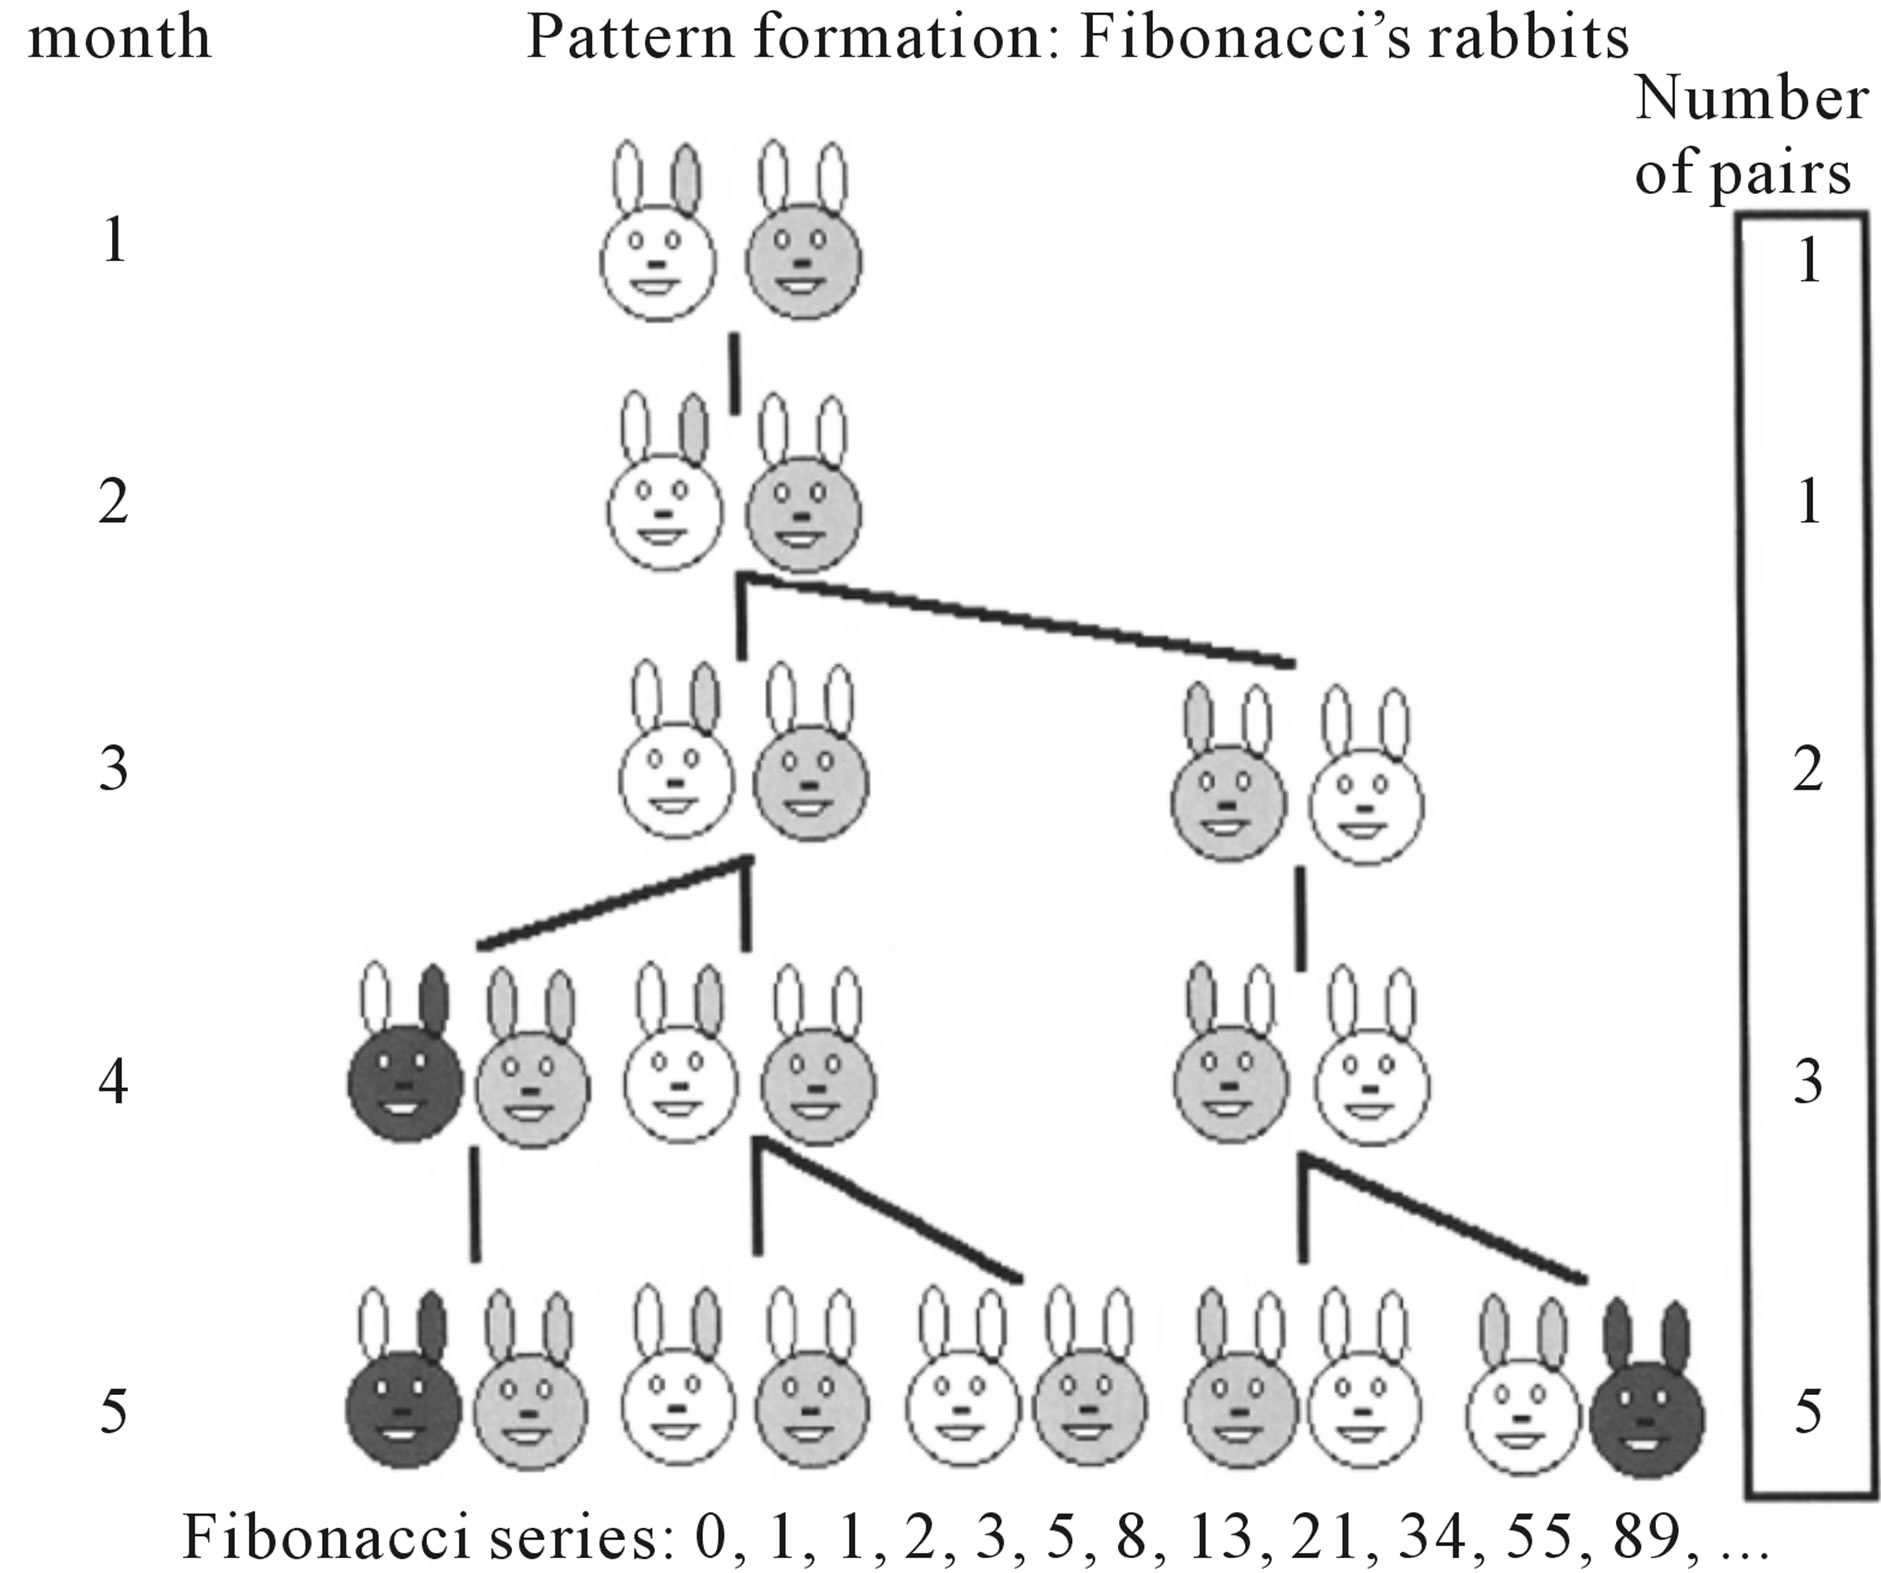 Occurrence of fibonacci numbers in development and structure of idealized diagram of the rabbit fibonacci pattern formation pooptronica